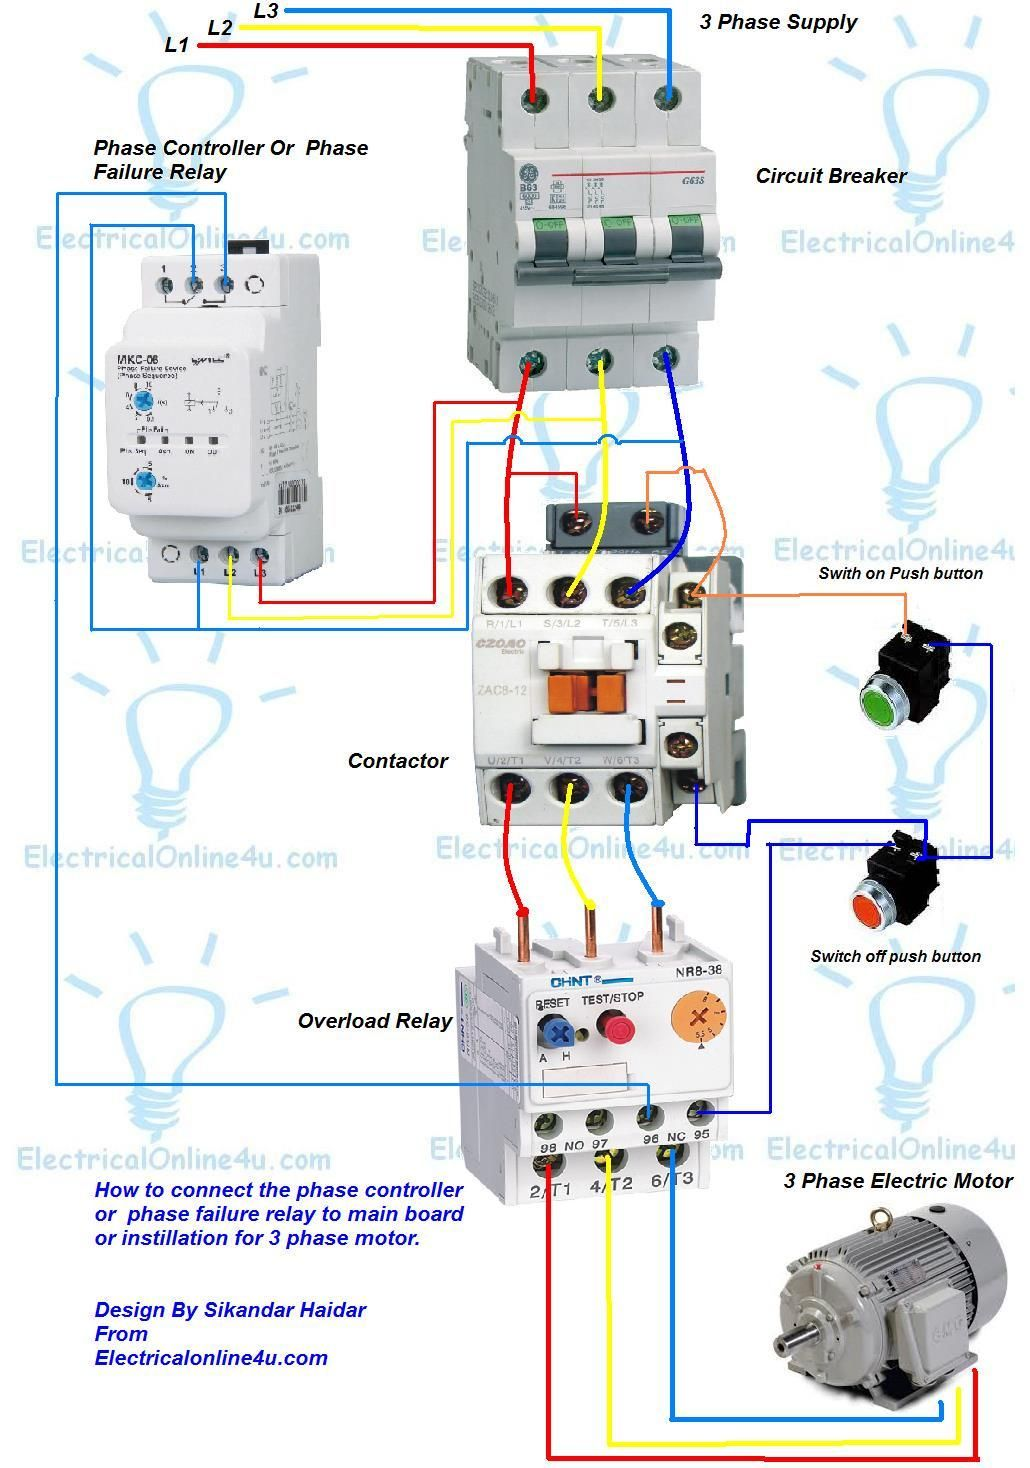 Phase Controller Wiring Failure Relay Diagram Di On Line Basic